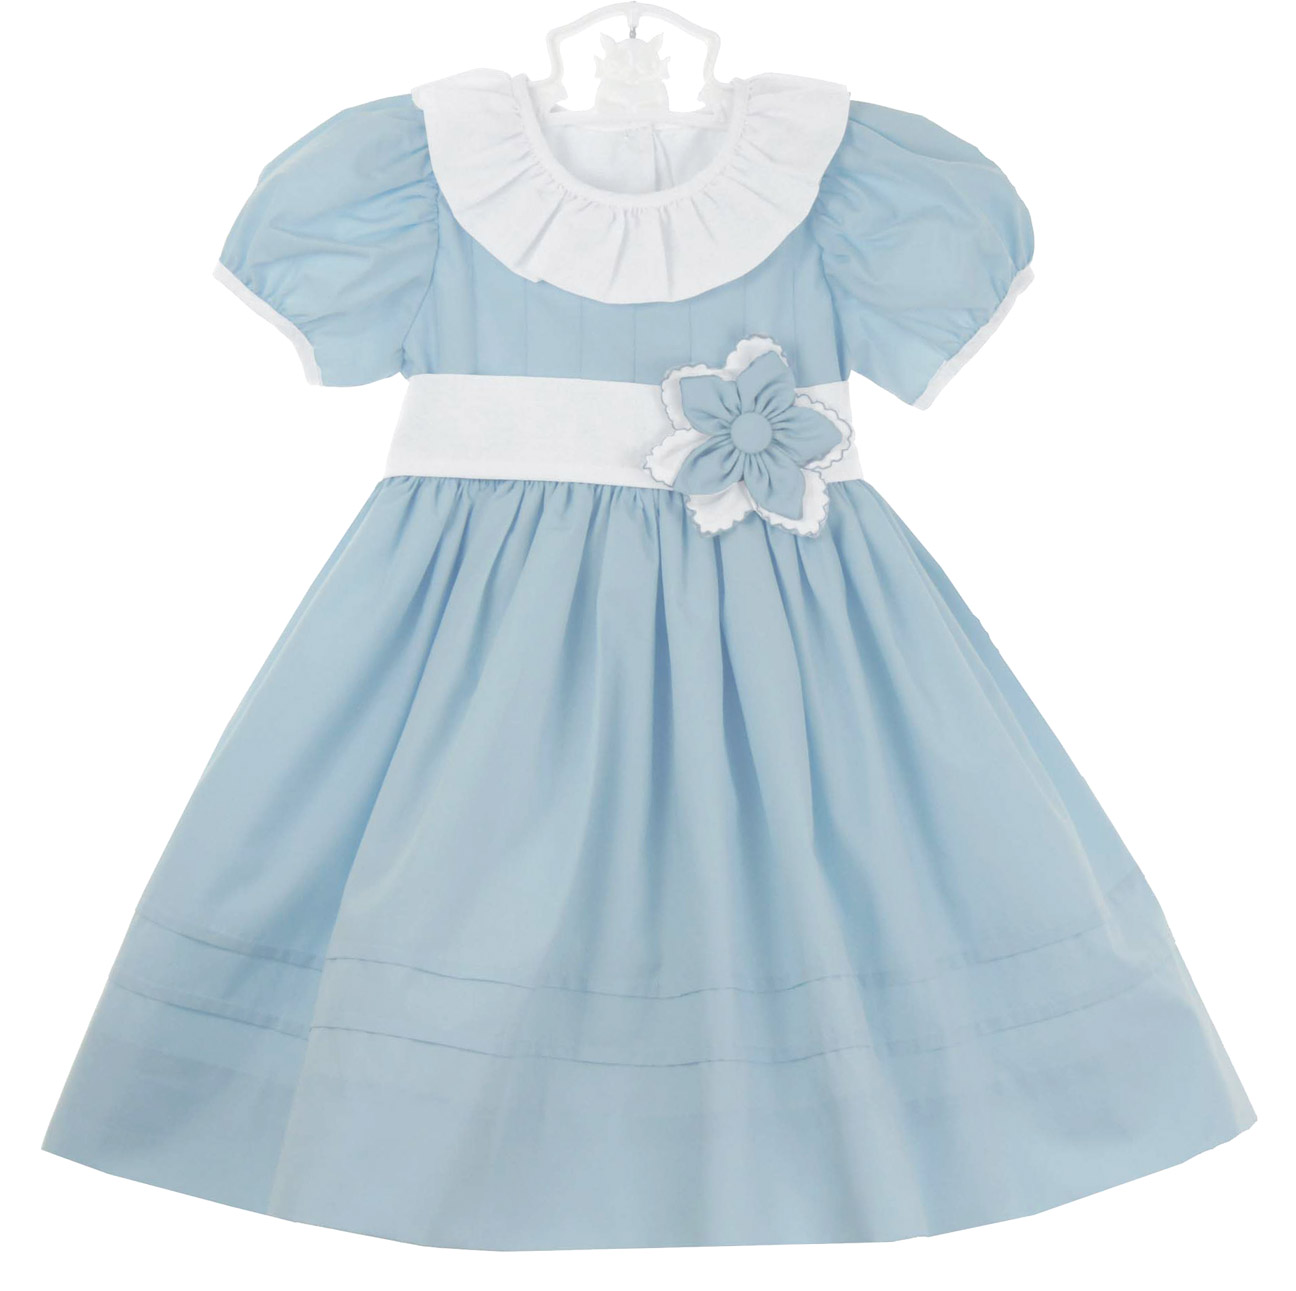 Le\' Za Me blue dress with white ruffled collar and flower accent ...